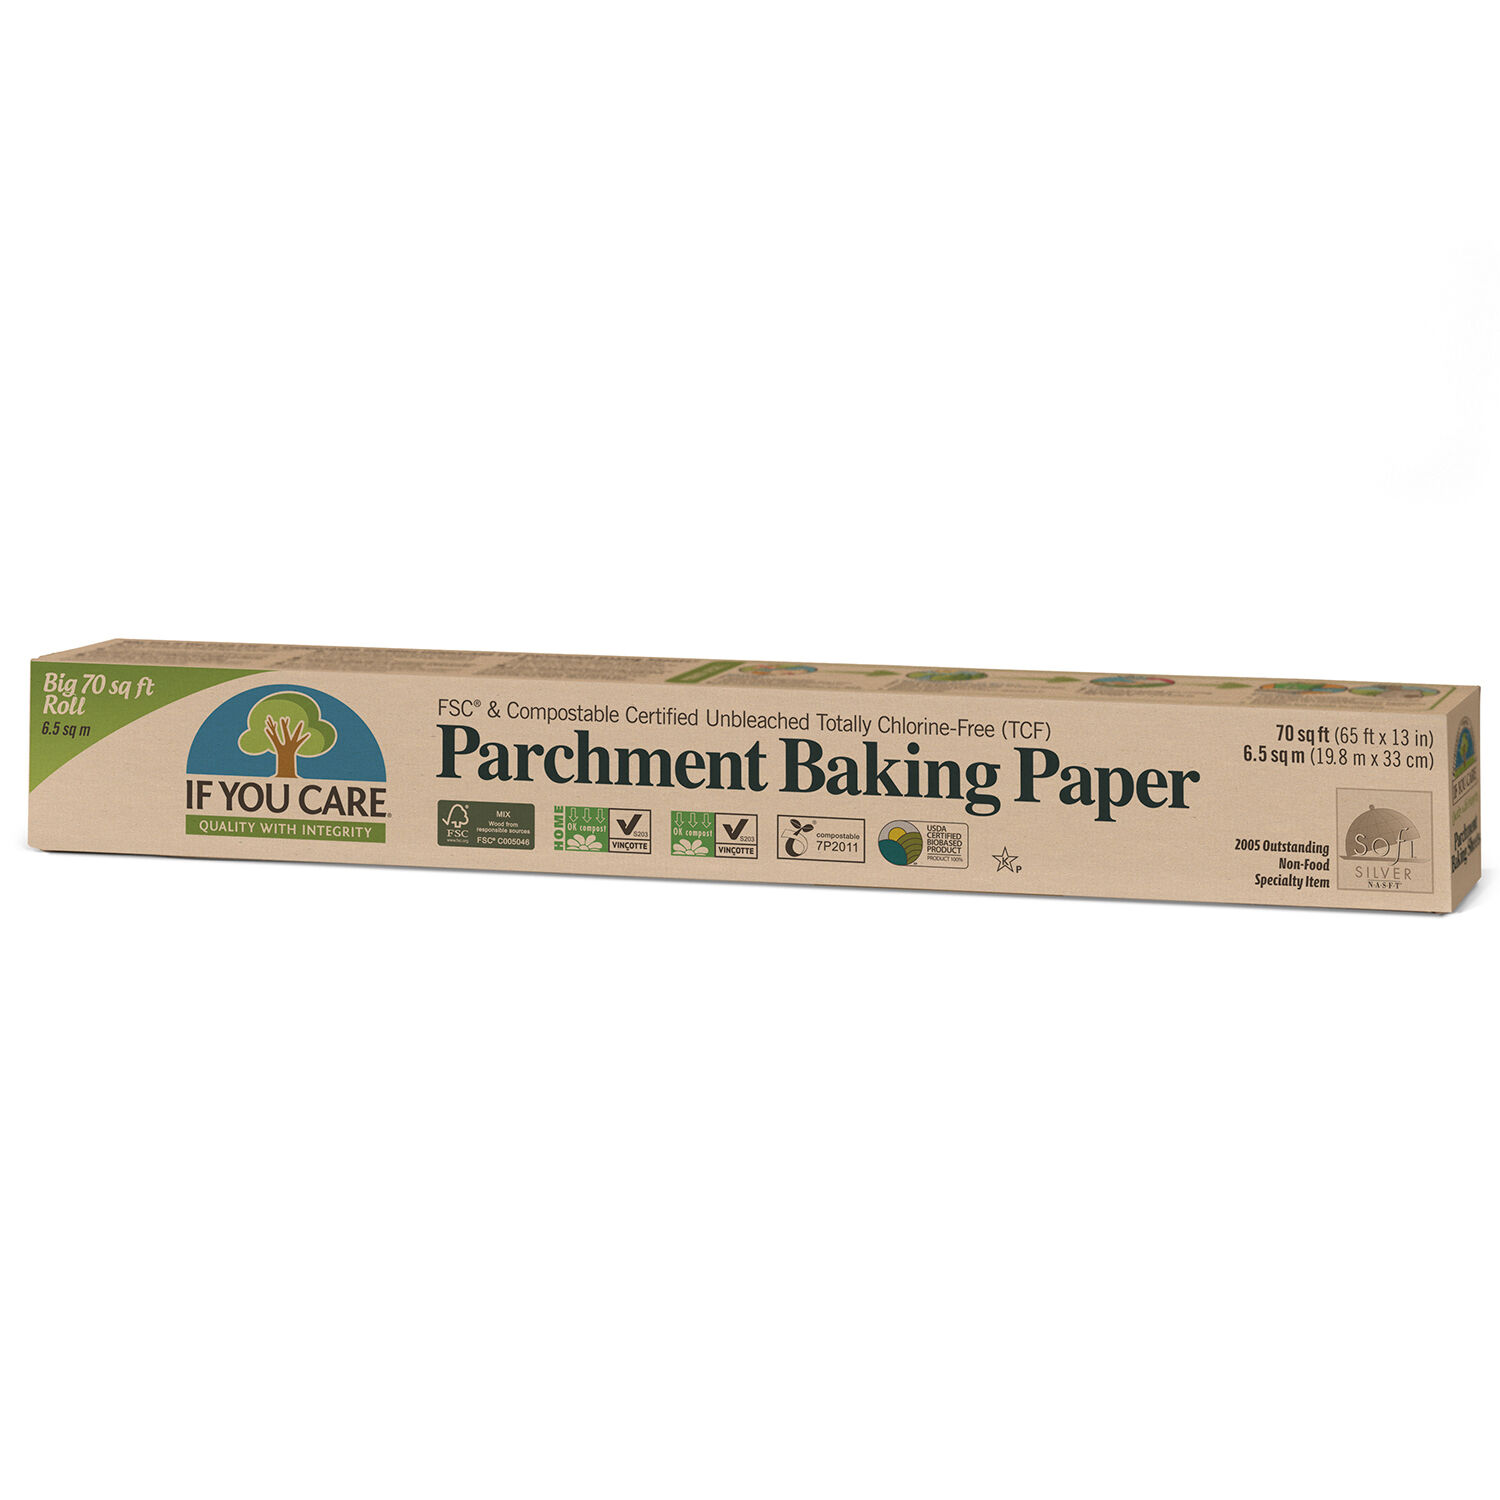 If You Care 100/% Unbleached Silicone Parchment Paper 70-Foot Roll Pack of 4